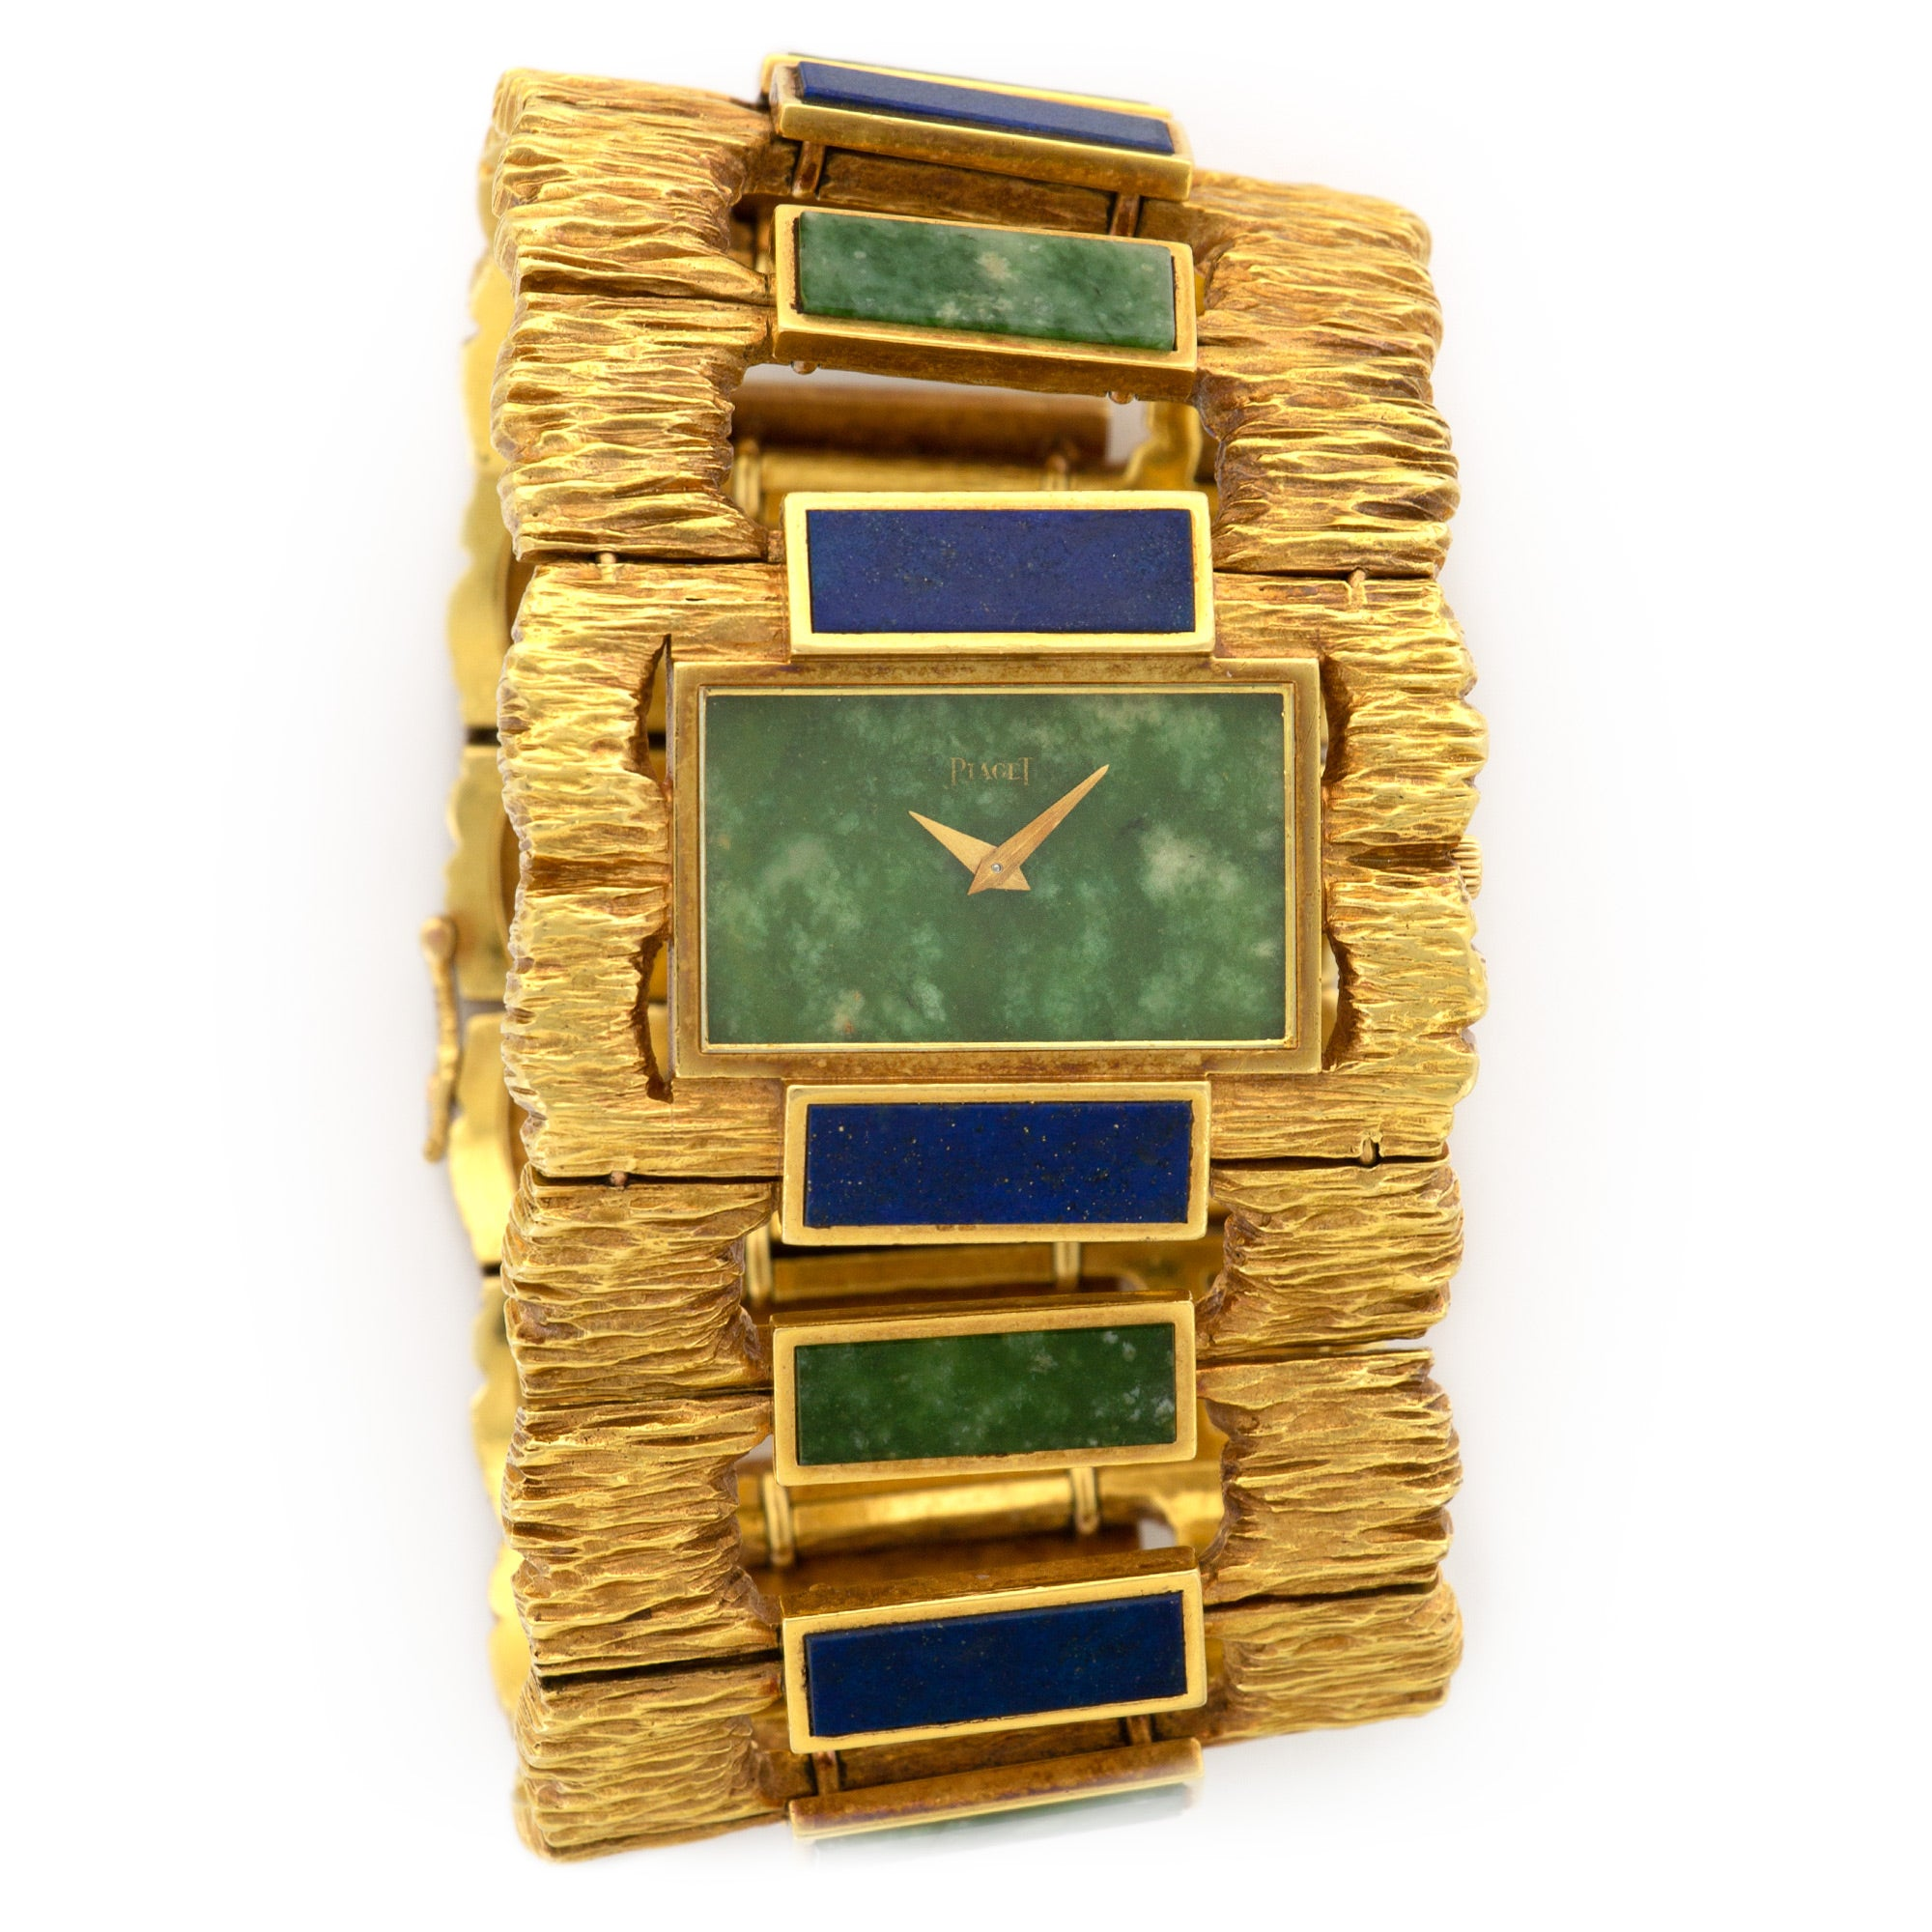 Piaget Vintage 9212 18k YG  Mint Ladies 18k YG Nephrite Jade 42mm Manual 1970s Yellow Gold Lapisi and Nephrite Jade Handmade Leather Travel Pouch